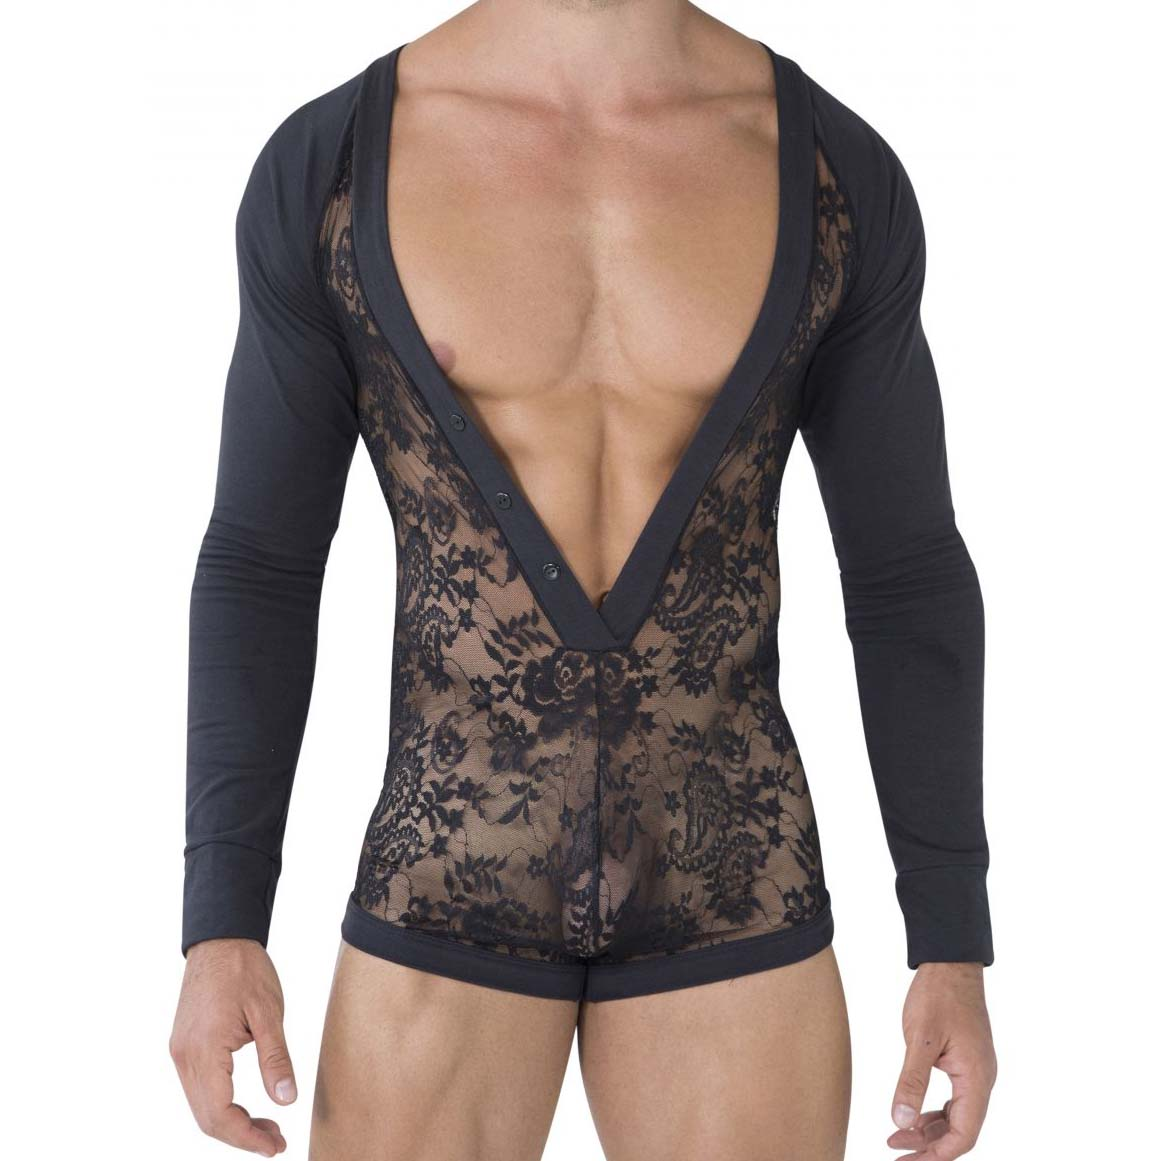 Body Candyman Lounge Lace 99465